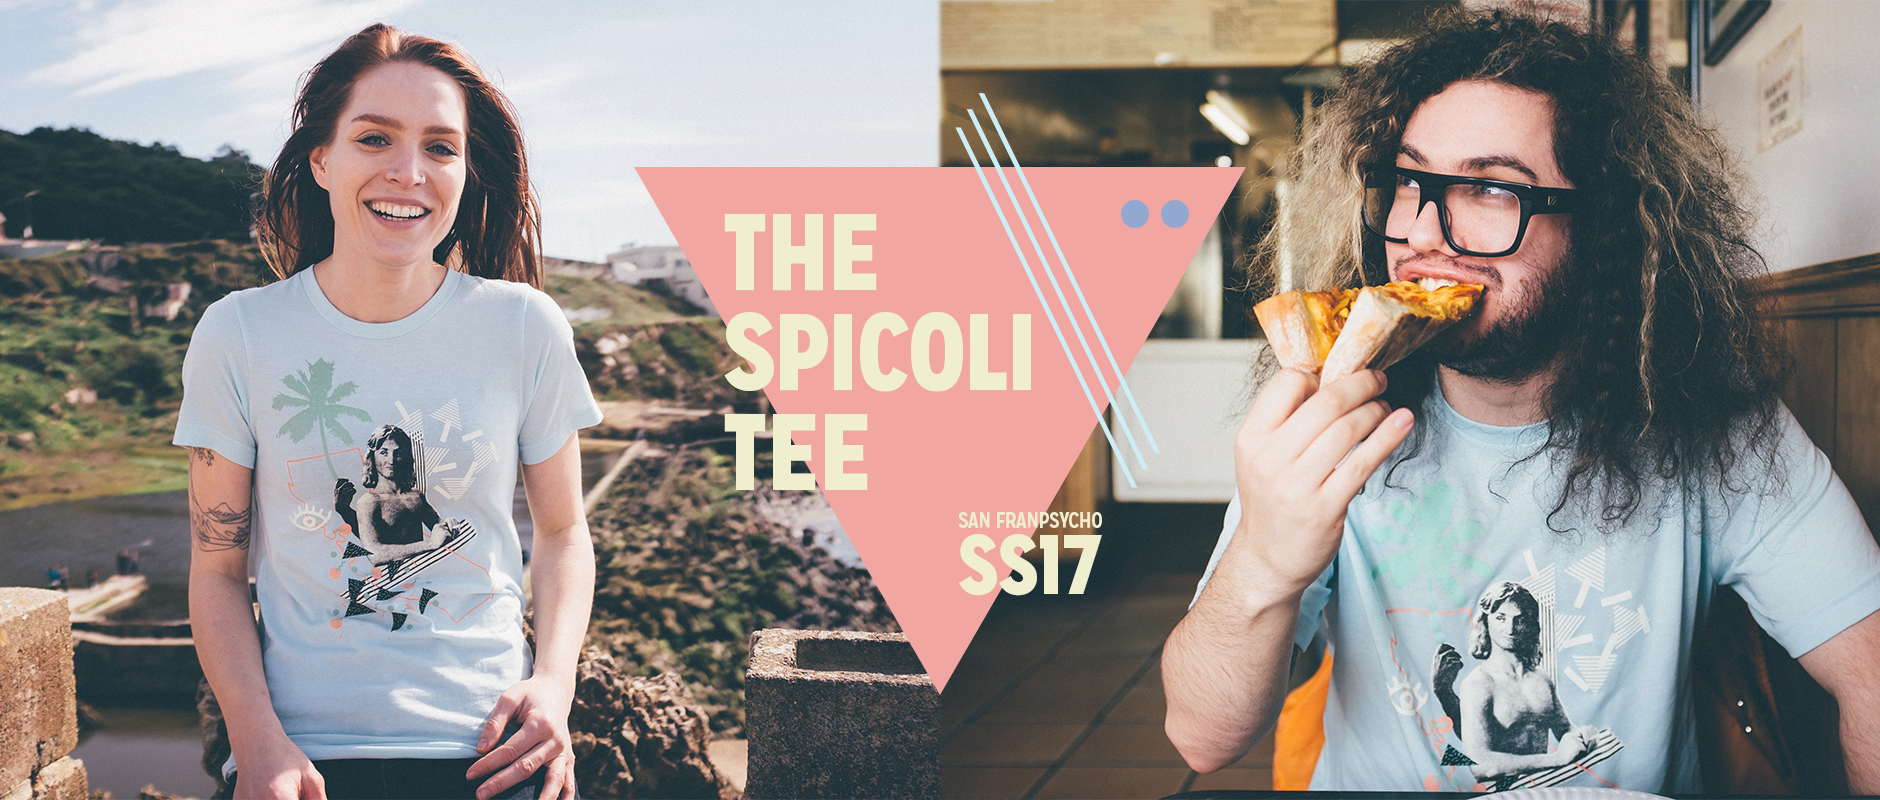 Introducing the Spicoli Tee!